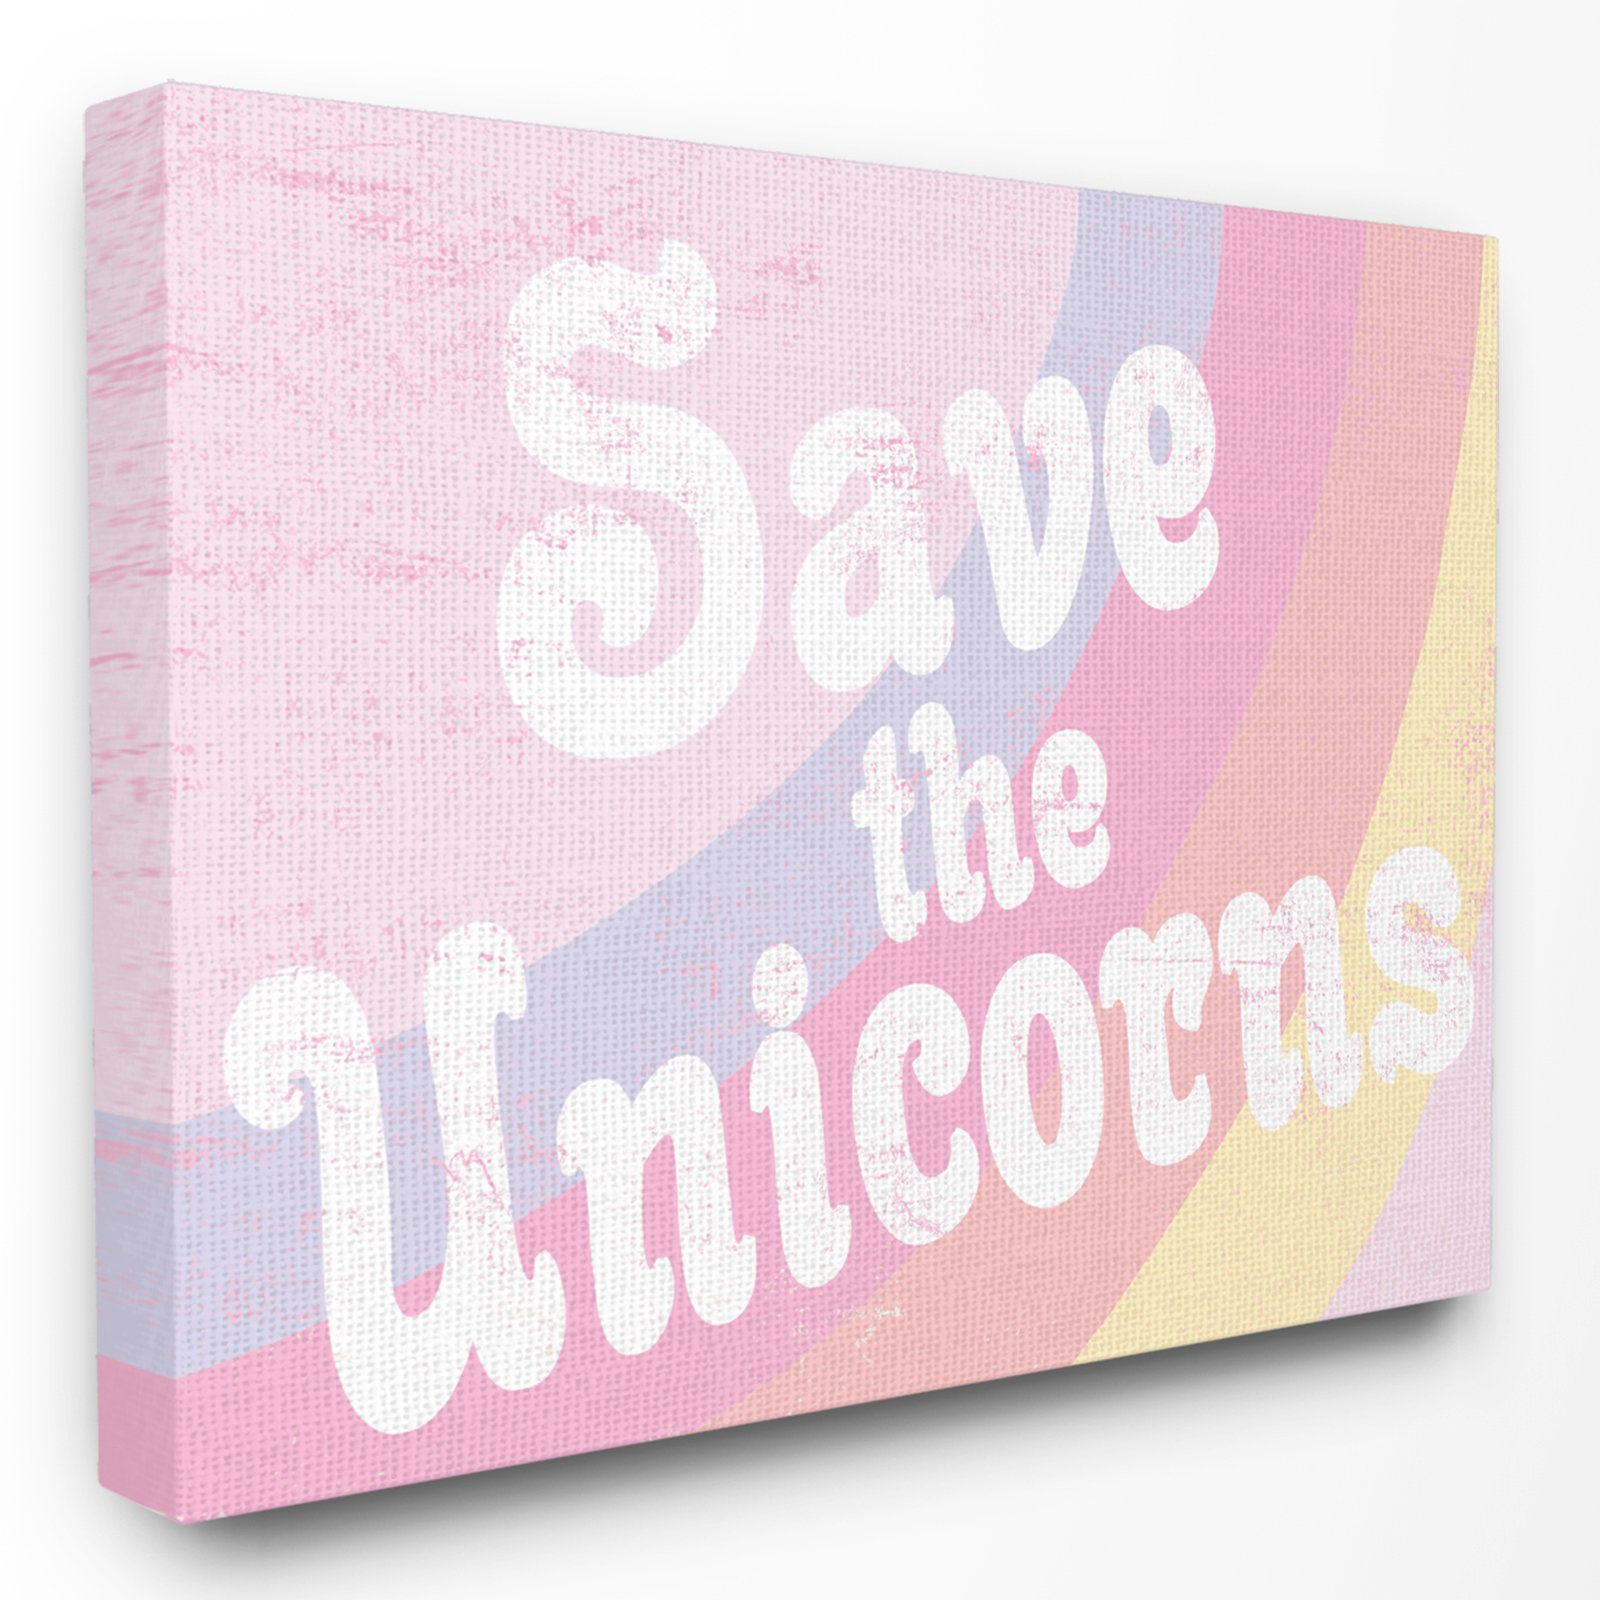 The Stupell Home Decor Collection The Kids Room By Stupell Save The Unicorns Wall Art Stretched Canvas Unicorn Wall Art Decor Kids Room Furniture